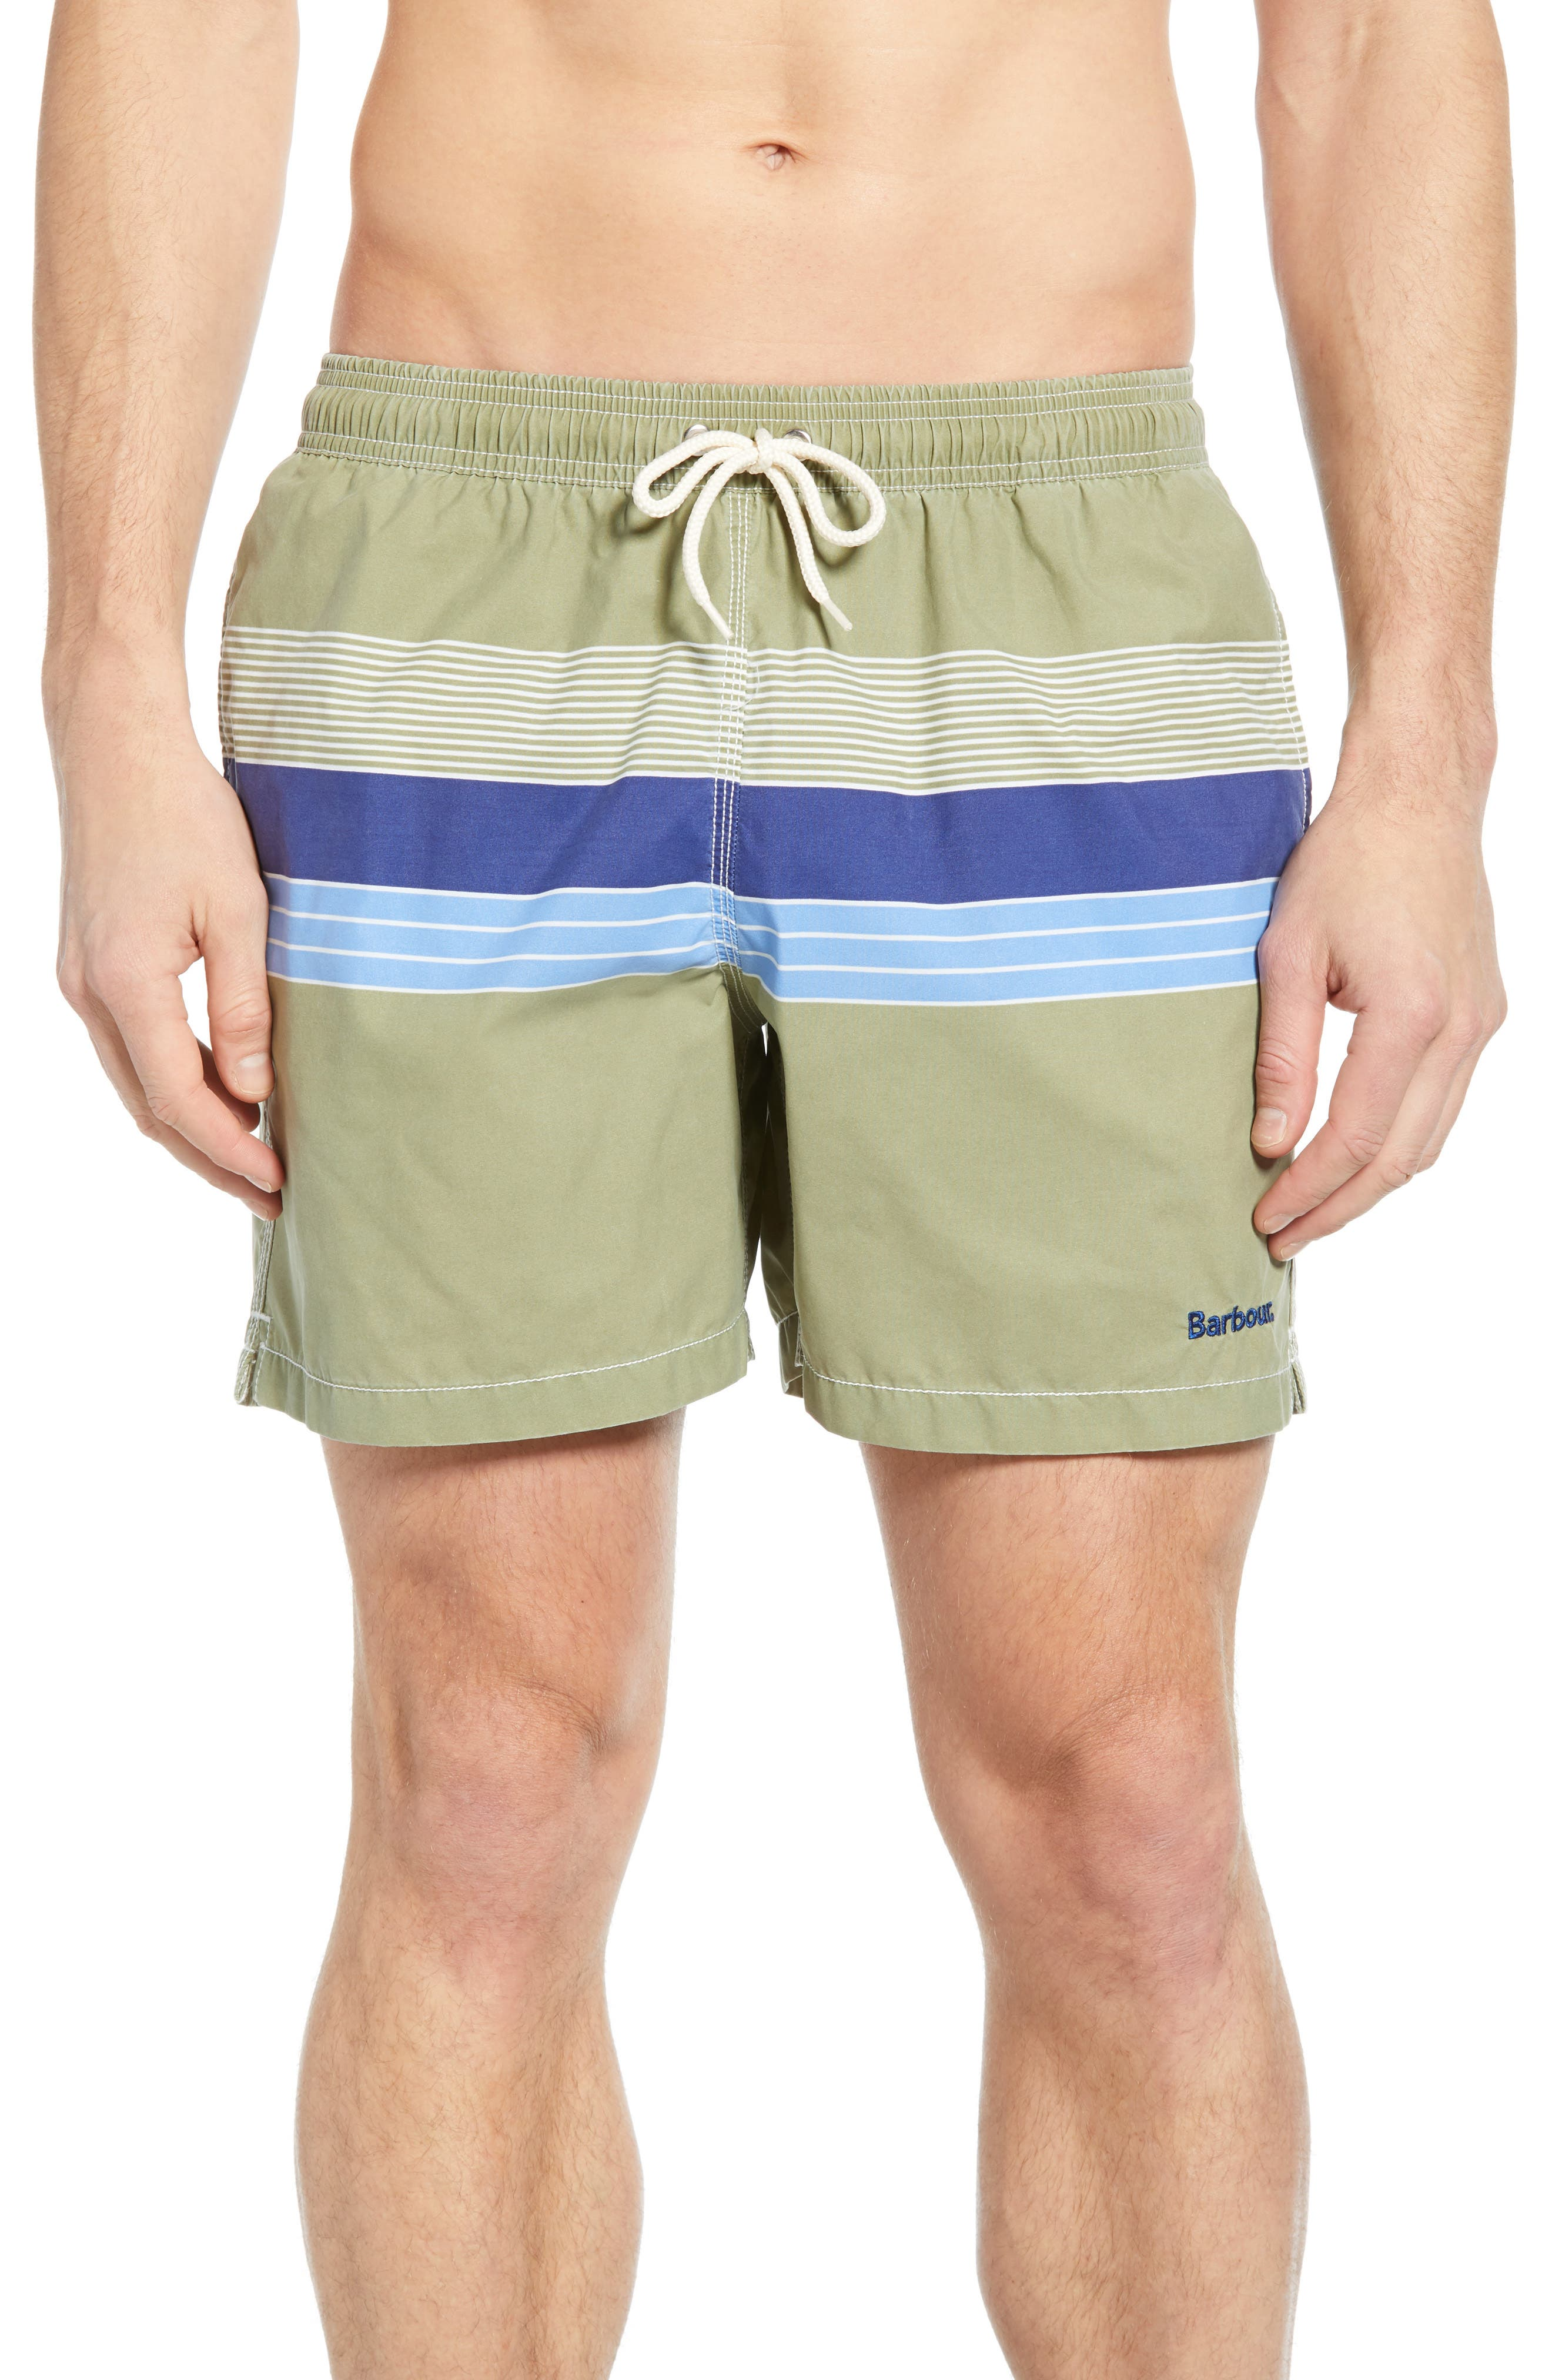 BARBOUR Rydal Swim Trunks, Main, color, OLIVE